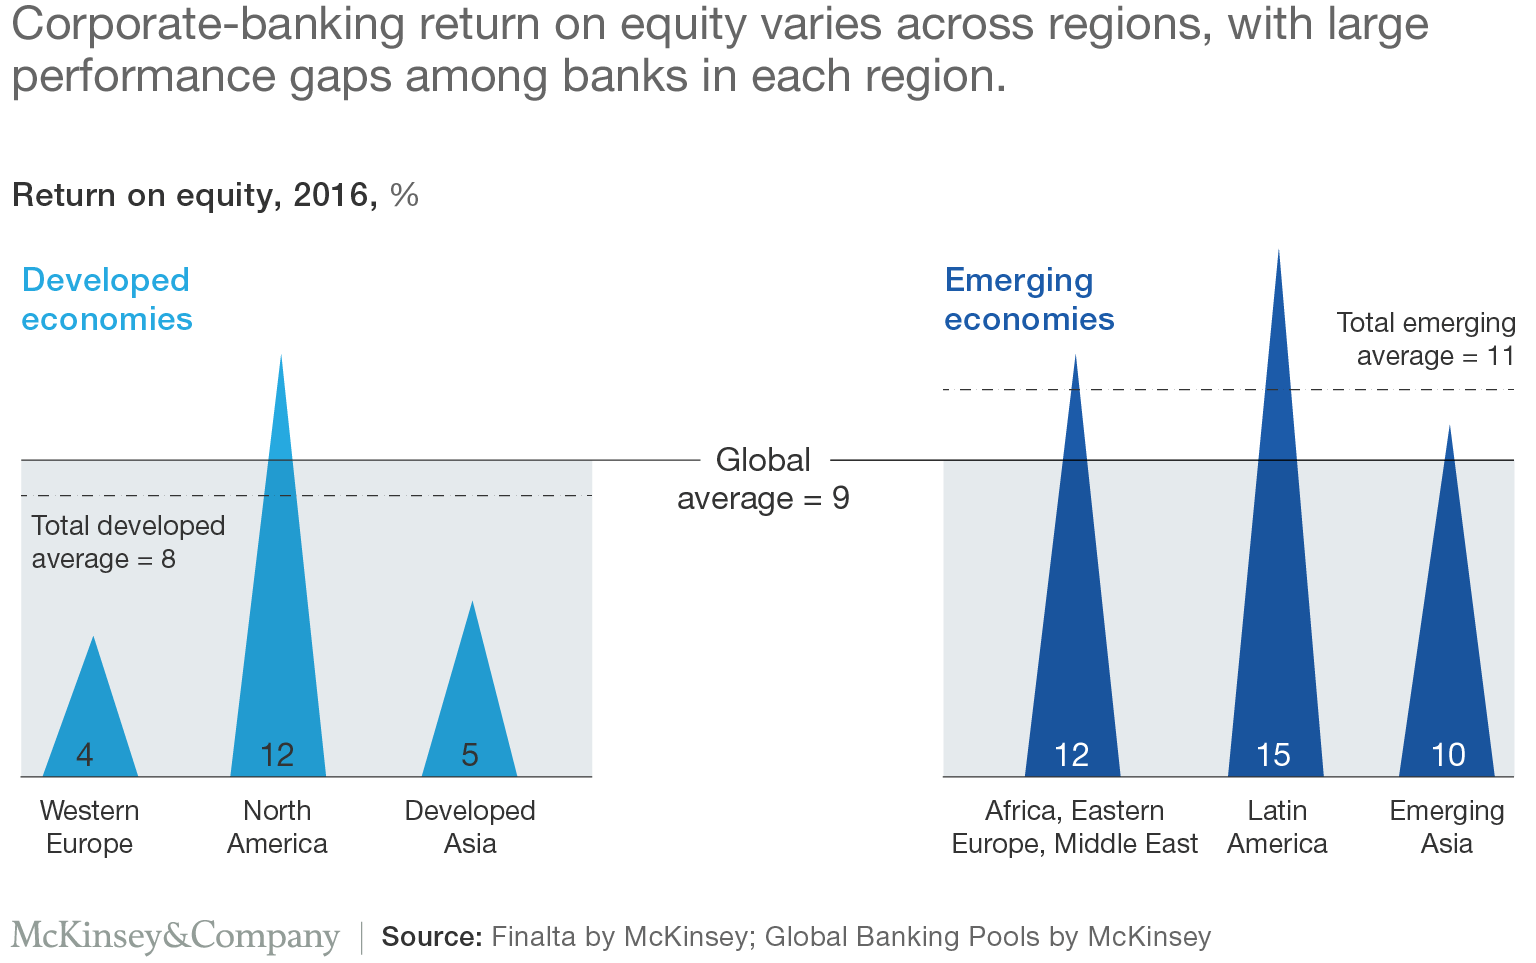 Corporate-banking return on equity varies across regions, with large performance gaps among banks in each region.